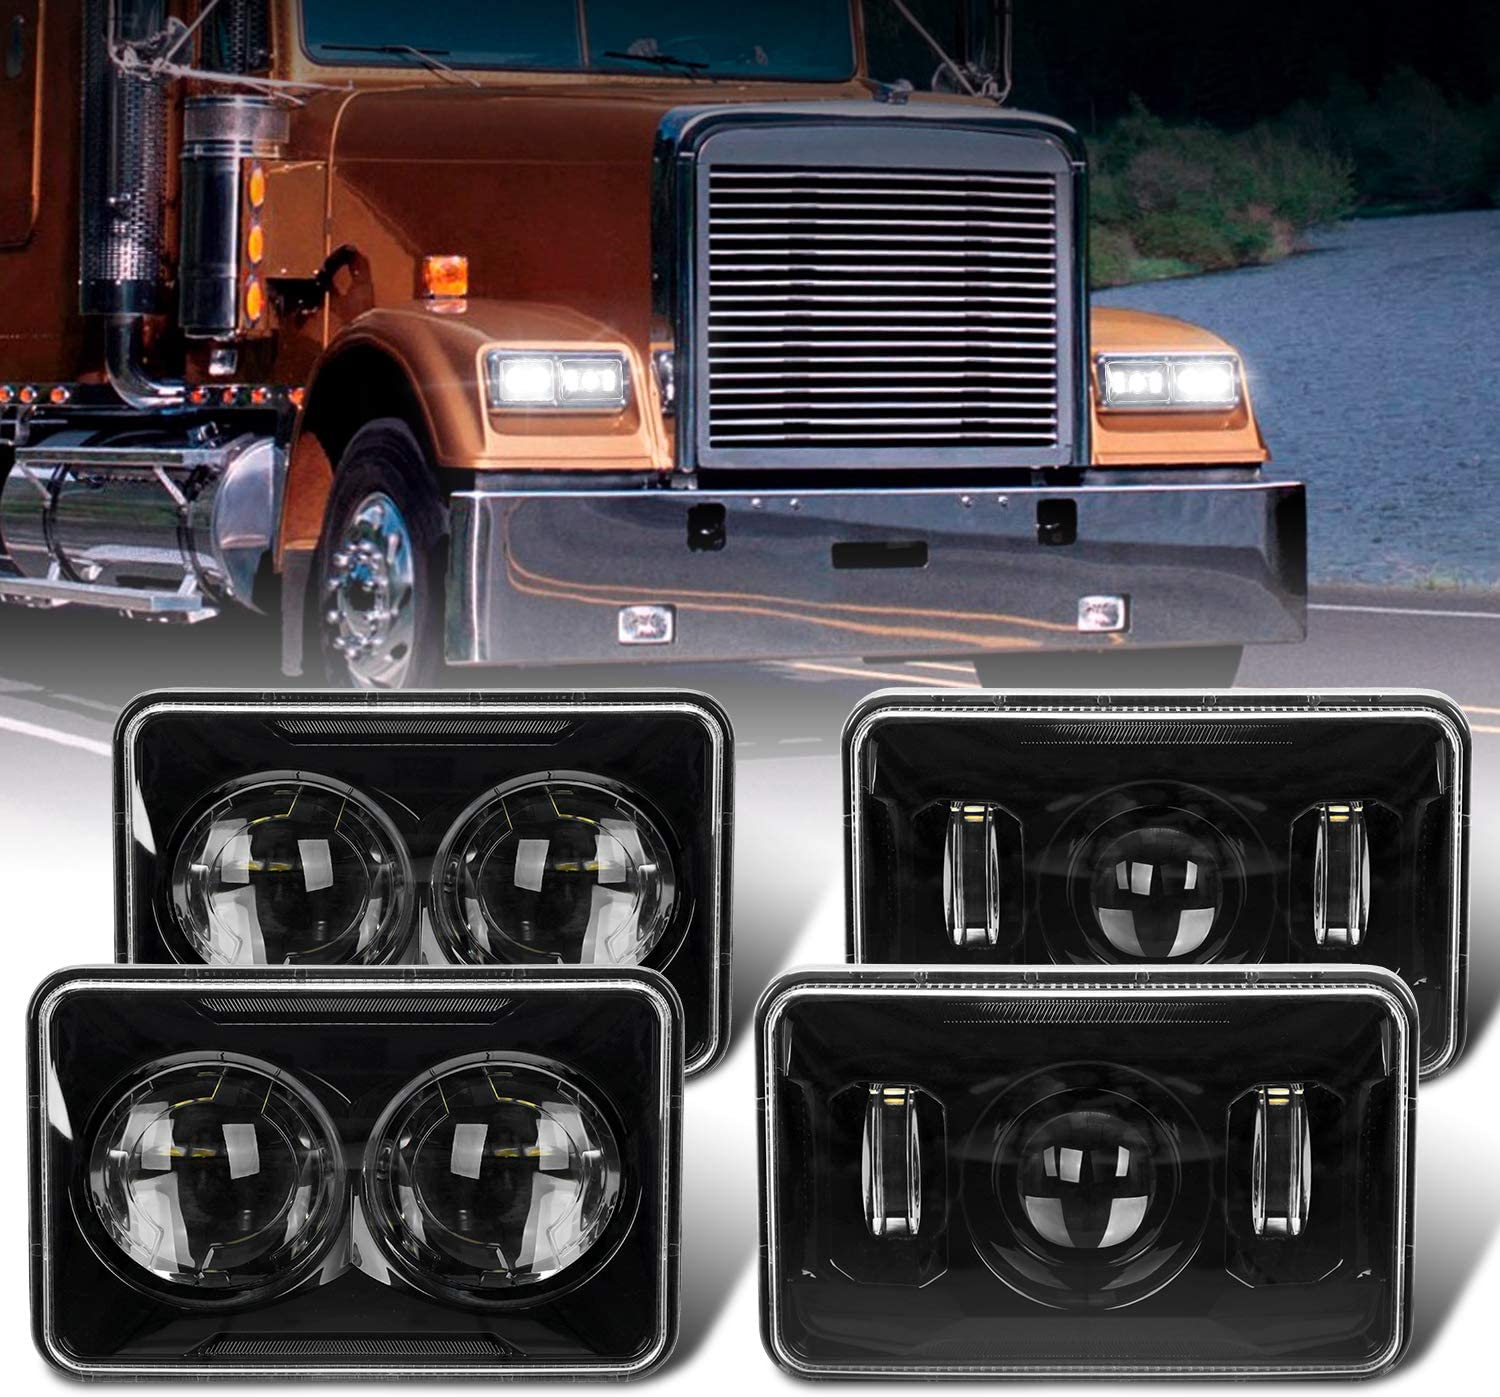 Black, 4X6 Inch 4PCS DOT Approved 60w Rectangular 4x6 inch LED Headlights H4651 H4652 H4656 H4666 H6545 Headlamps Compatible with Freightliner Peterbilt Kenworth Oldsmobile Cutlass Trucks